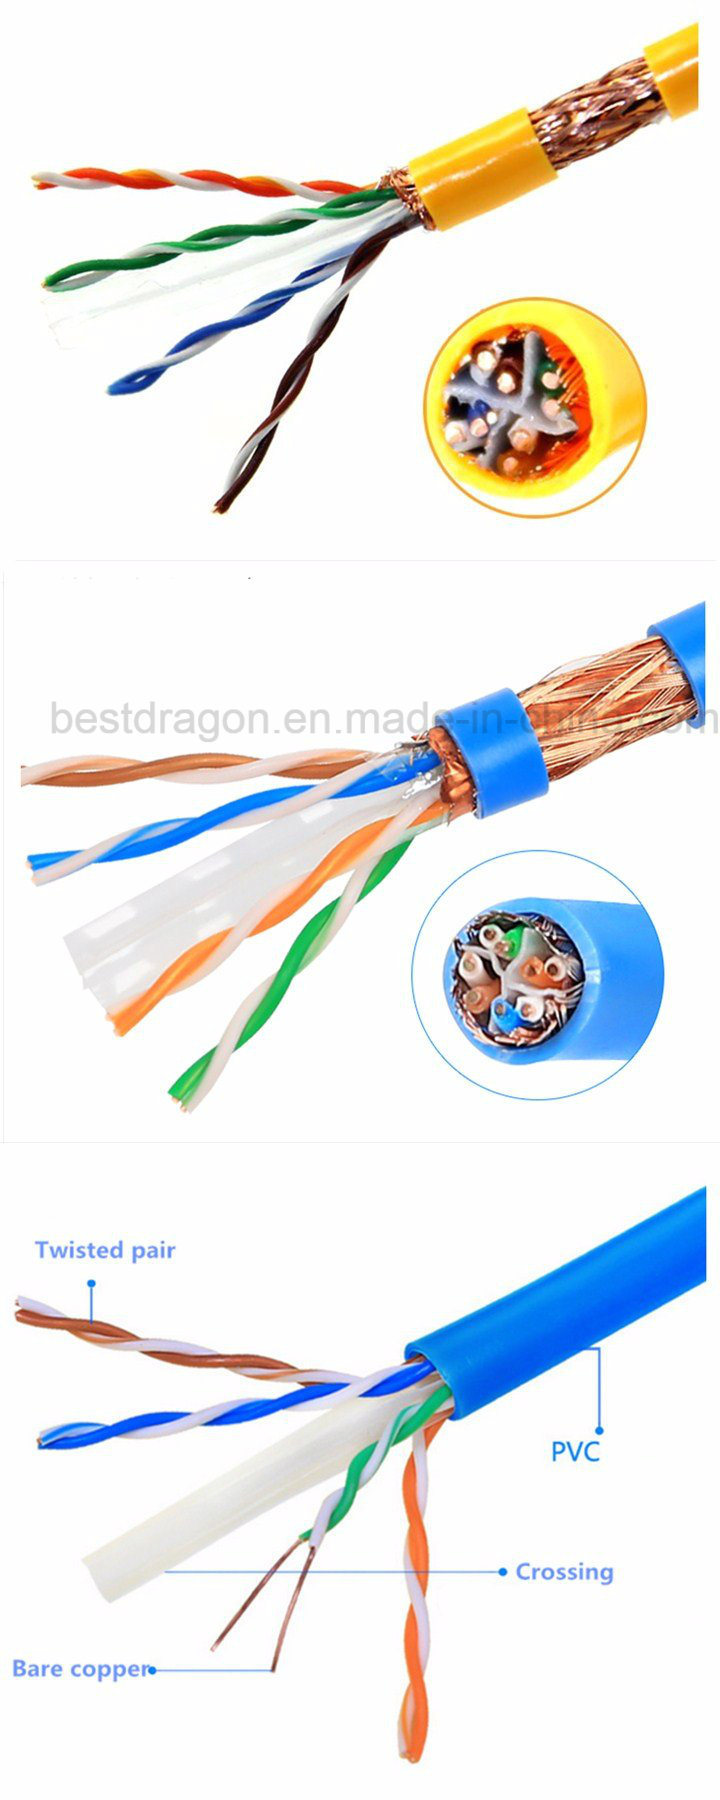 Indoor Utp Ftp Cat5e 305m 4 Pair 24awg Network Cable Lan Wiring On Cat5 Solid China Goods Can Be Delivered By Air Express Or Sea International As Fedex Ups Dhl Tnt You Choose The Best Way Wish